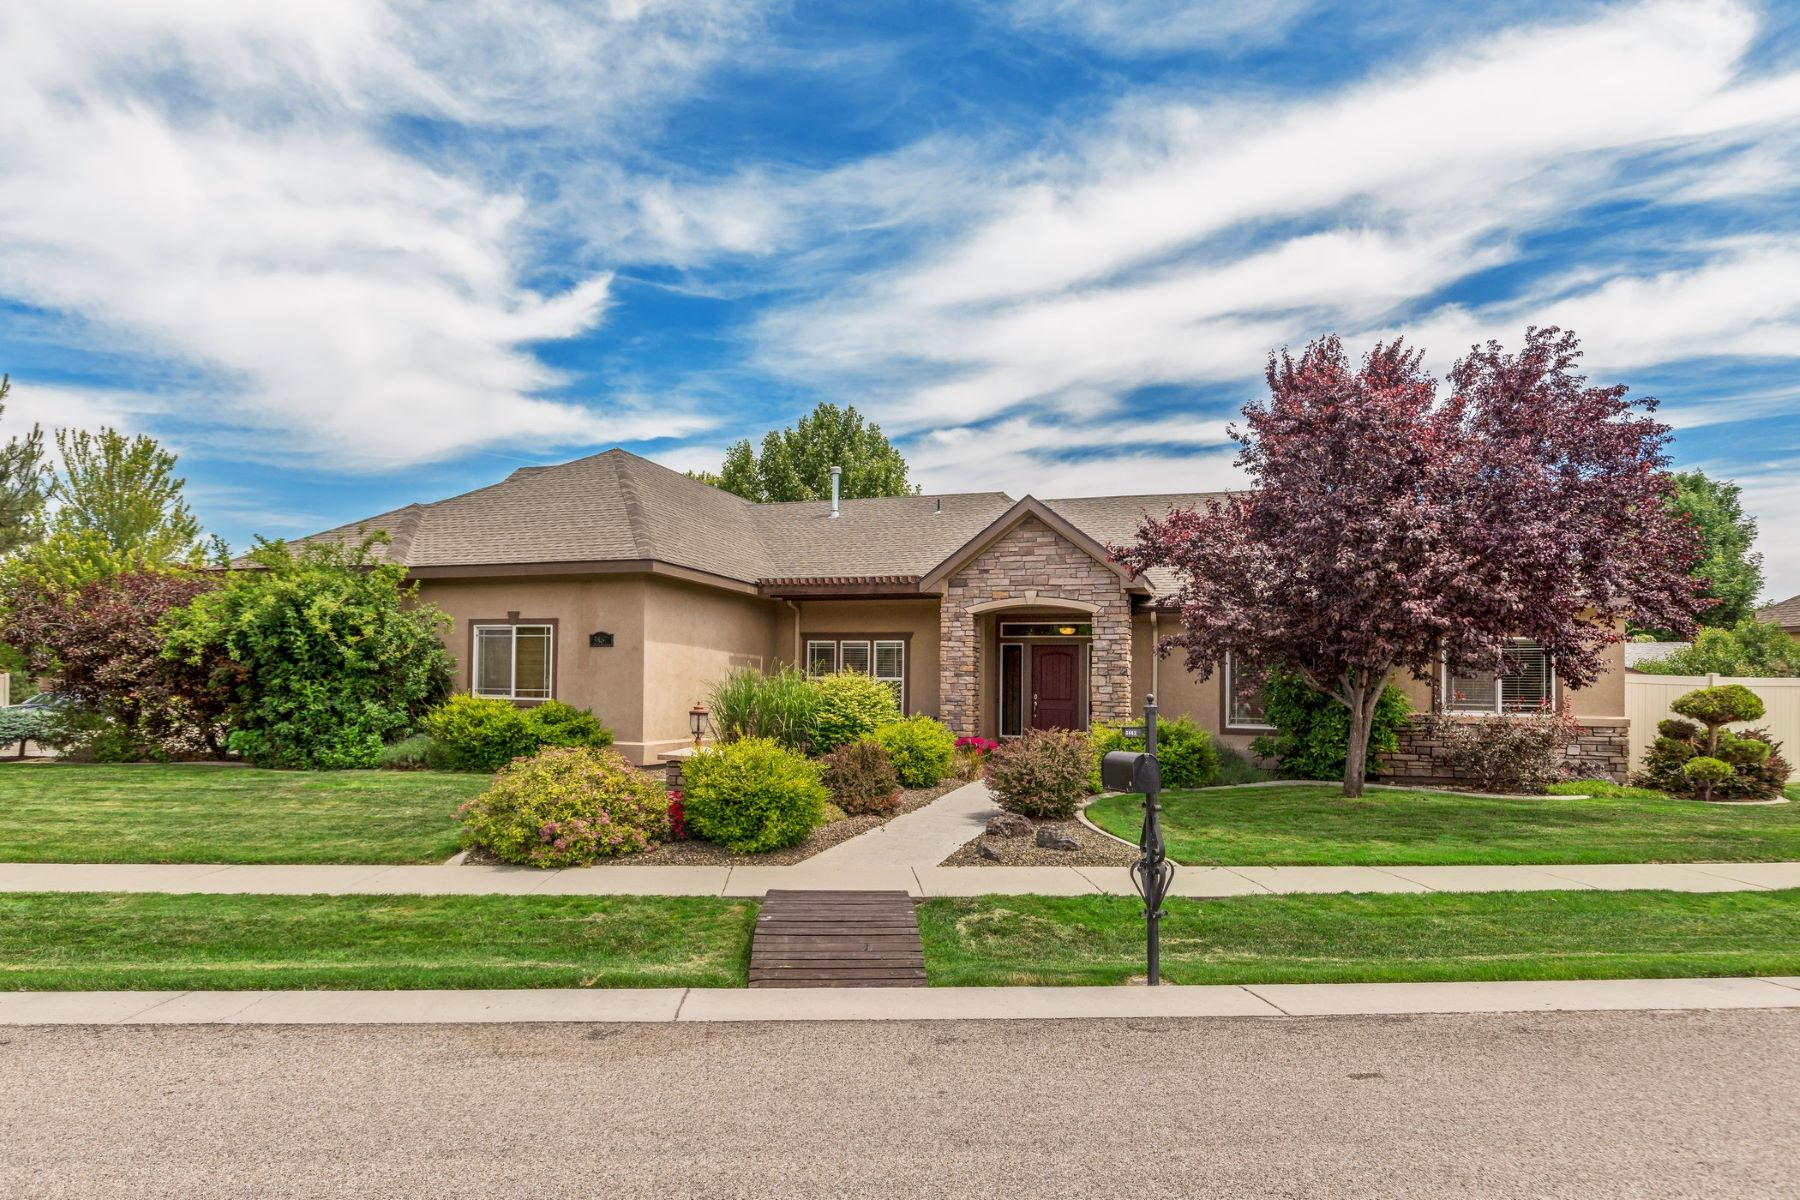 Single Family Homes for Sale at 3862 Firenze Way, Meridian 3862 S Firenze Way Meridian, Idaho 83642 United States